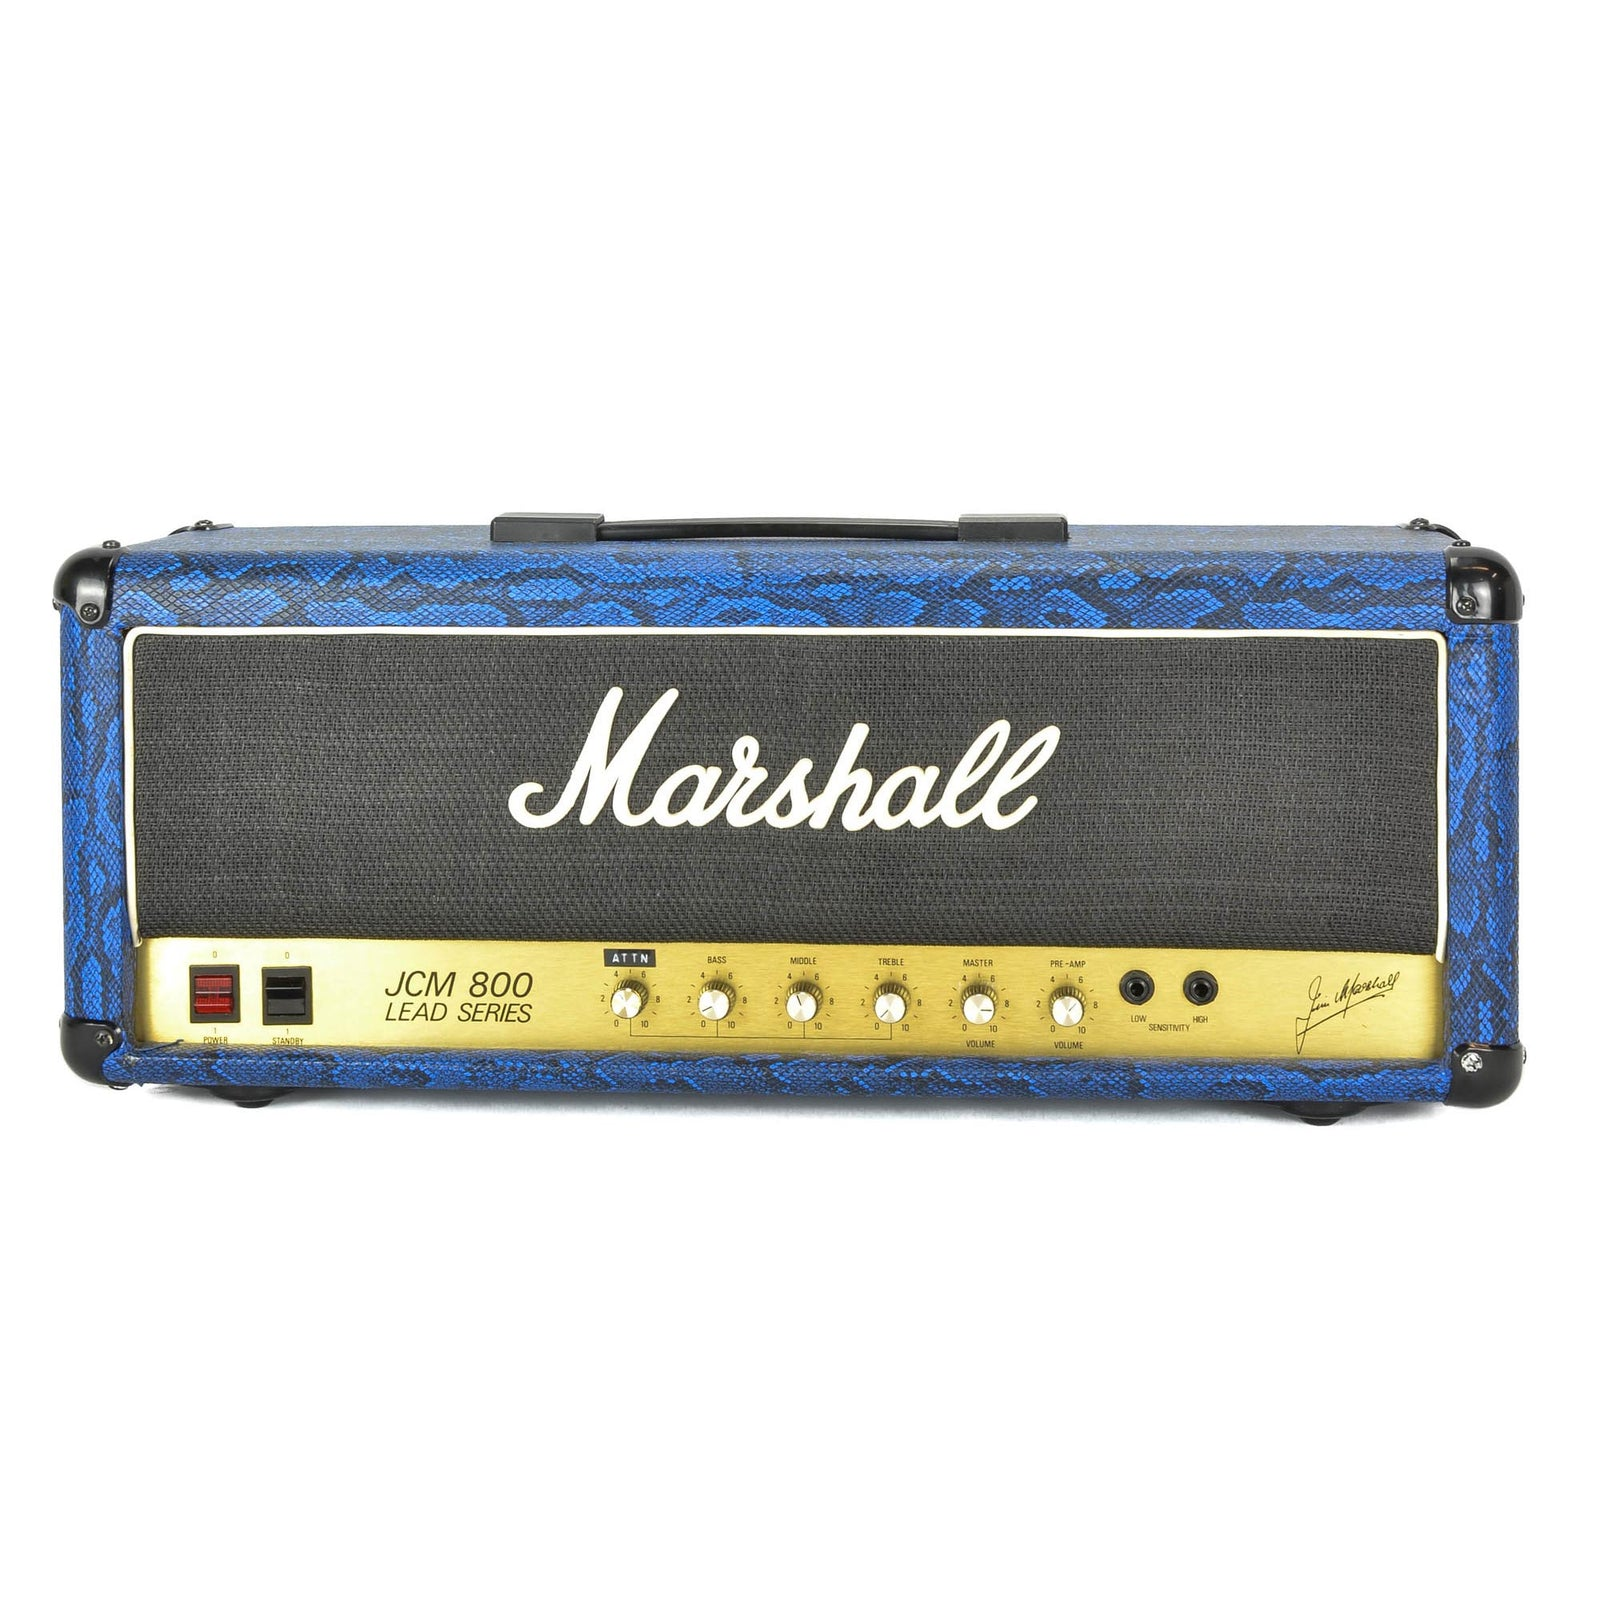 Marshall JCM800 Blue Snakeskin With Attenuator Mod - Used